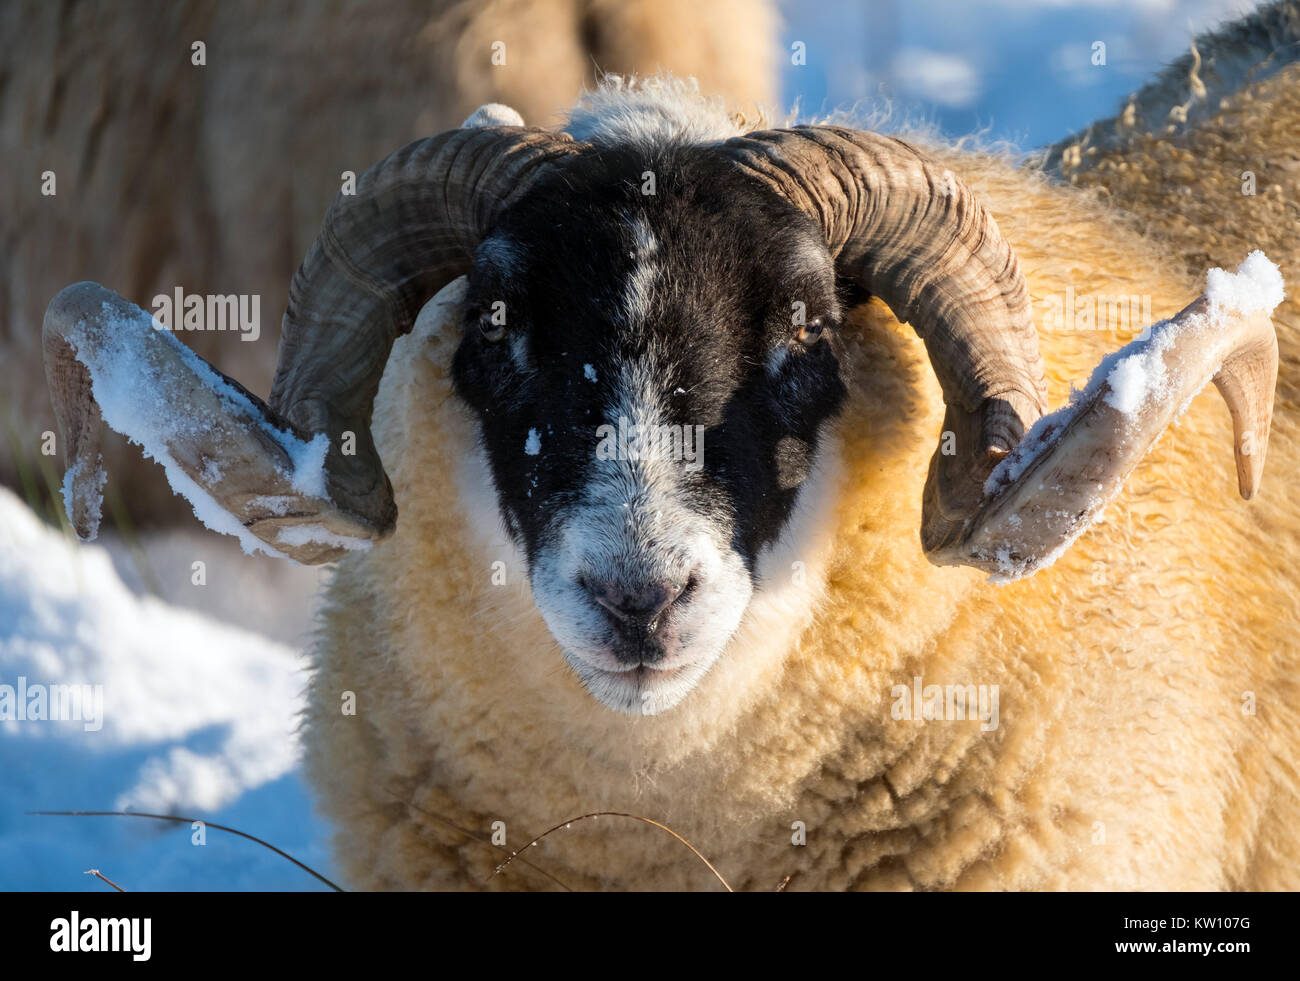 Blackface sheep foraging for food in the snow near Woolfords West Lothian, Scotland. - Stock Image